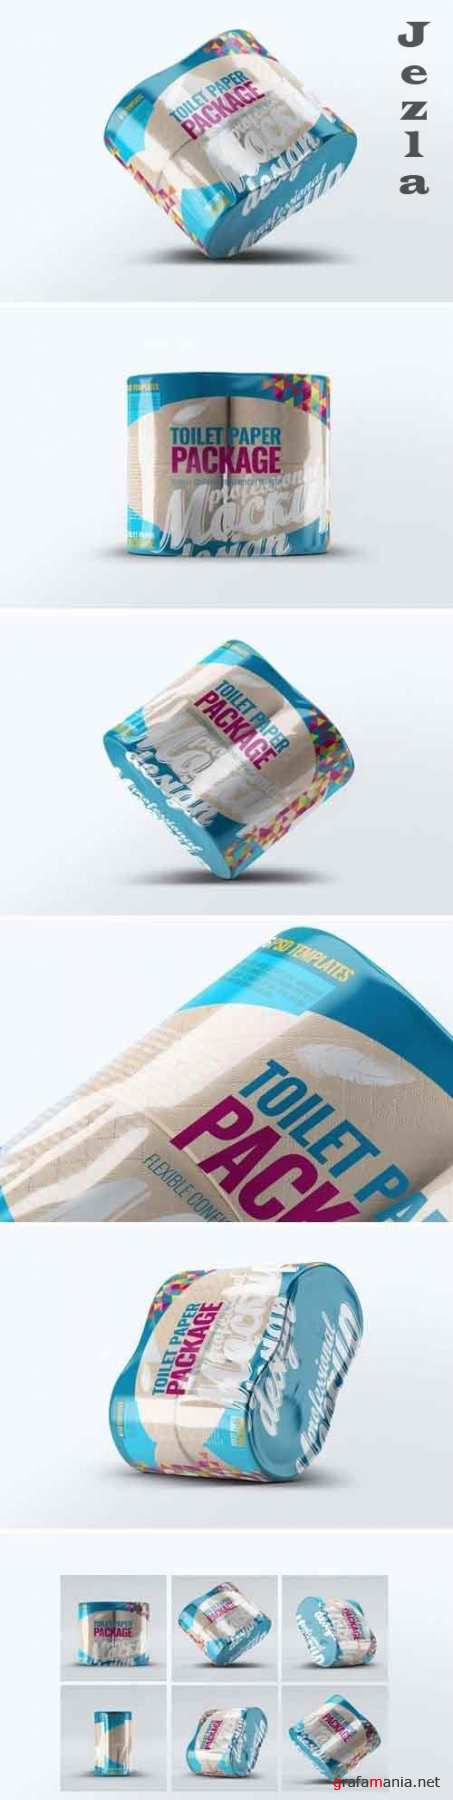 Toilet Paper Package Mock-Up